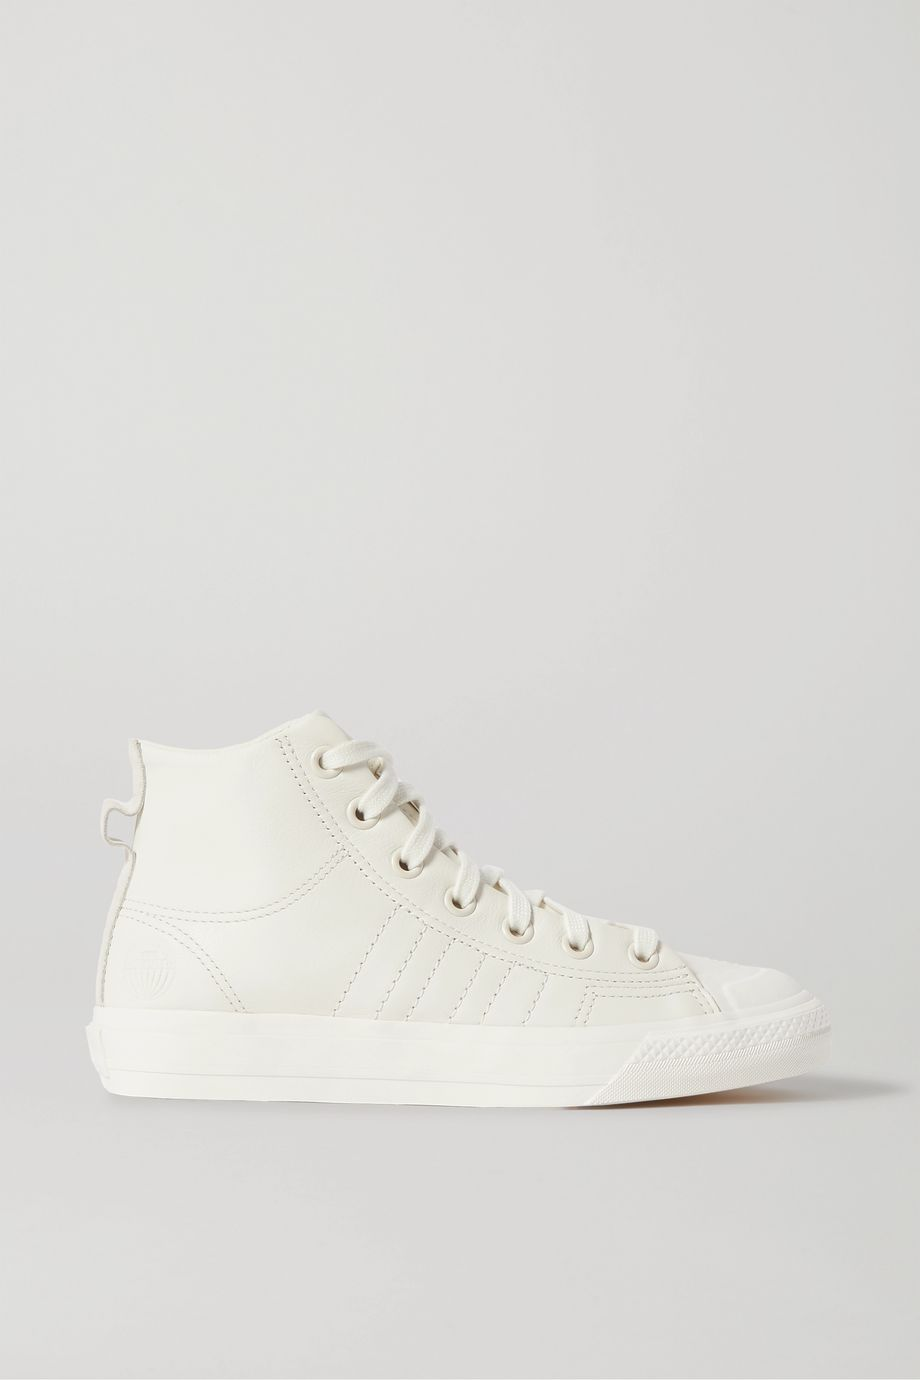 adidas Originals Nizza HI RF suede-trimmed leather high-top sneakers